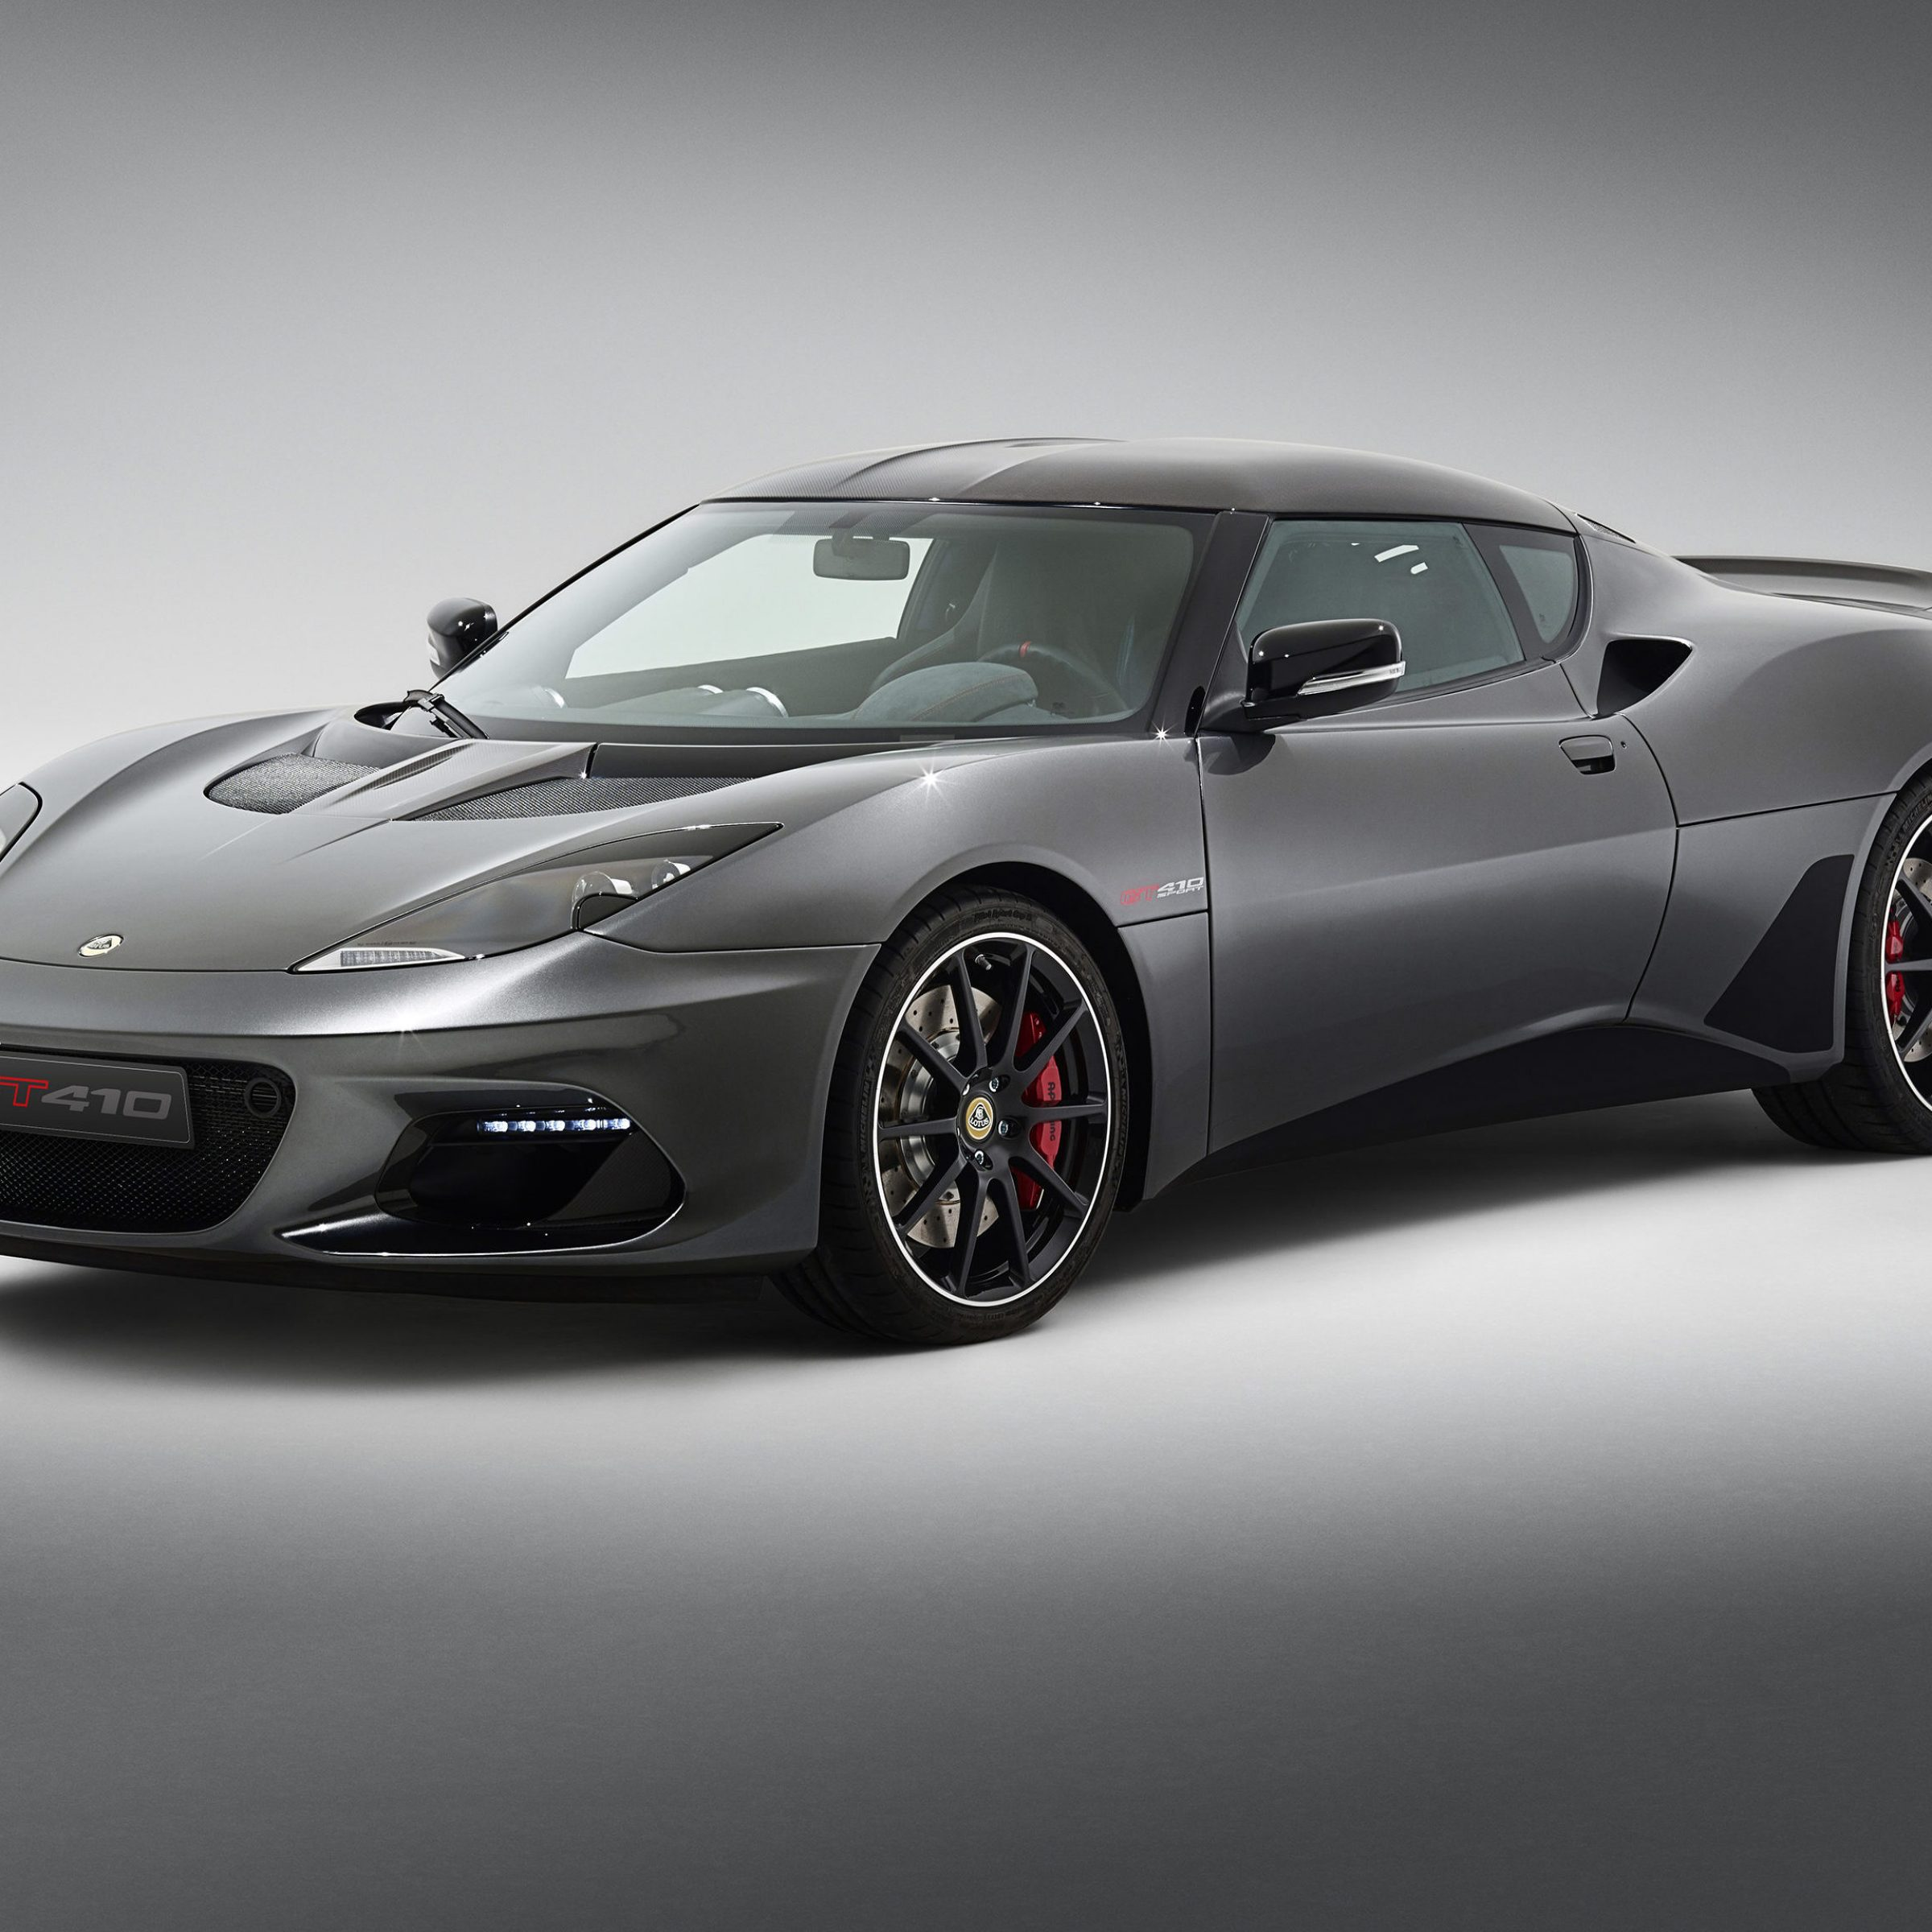 Lotus Sports Car >> The Evora Gt410 Sport Lotus Cars For The Drivers